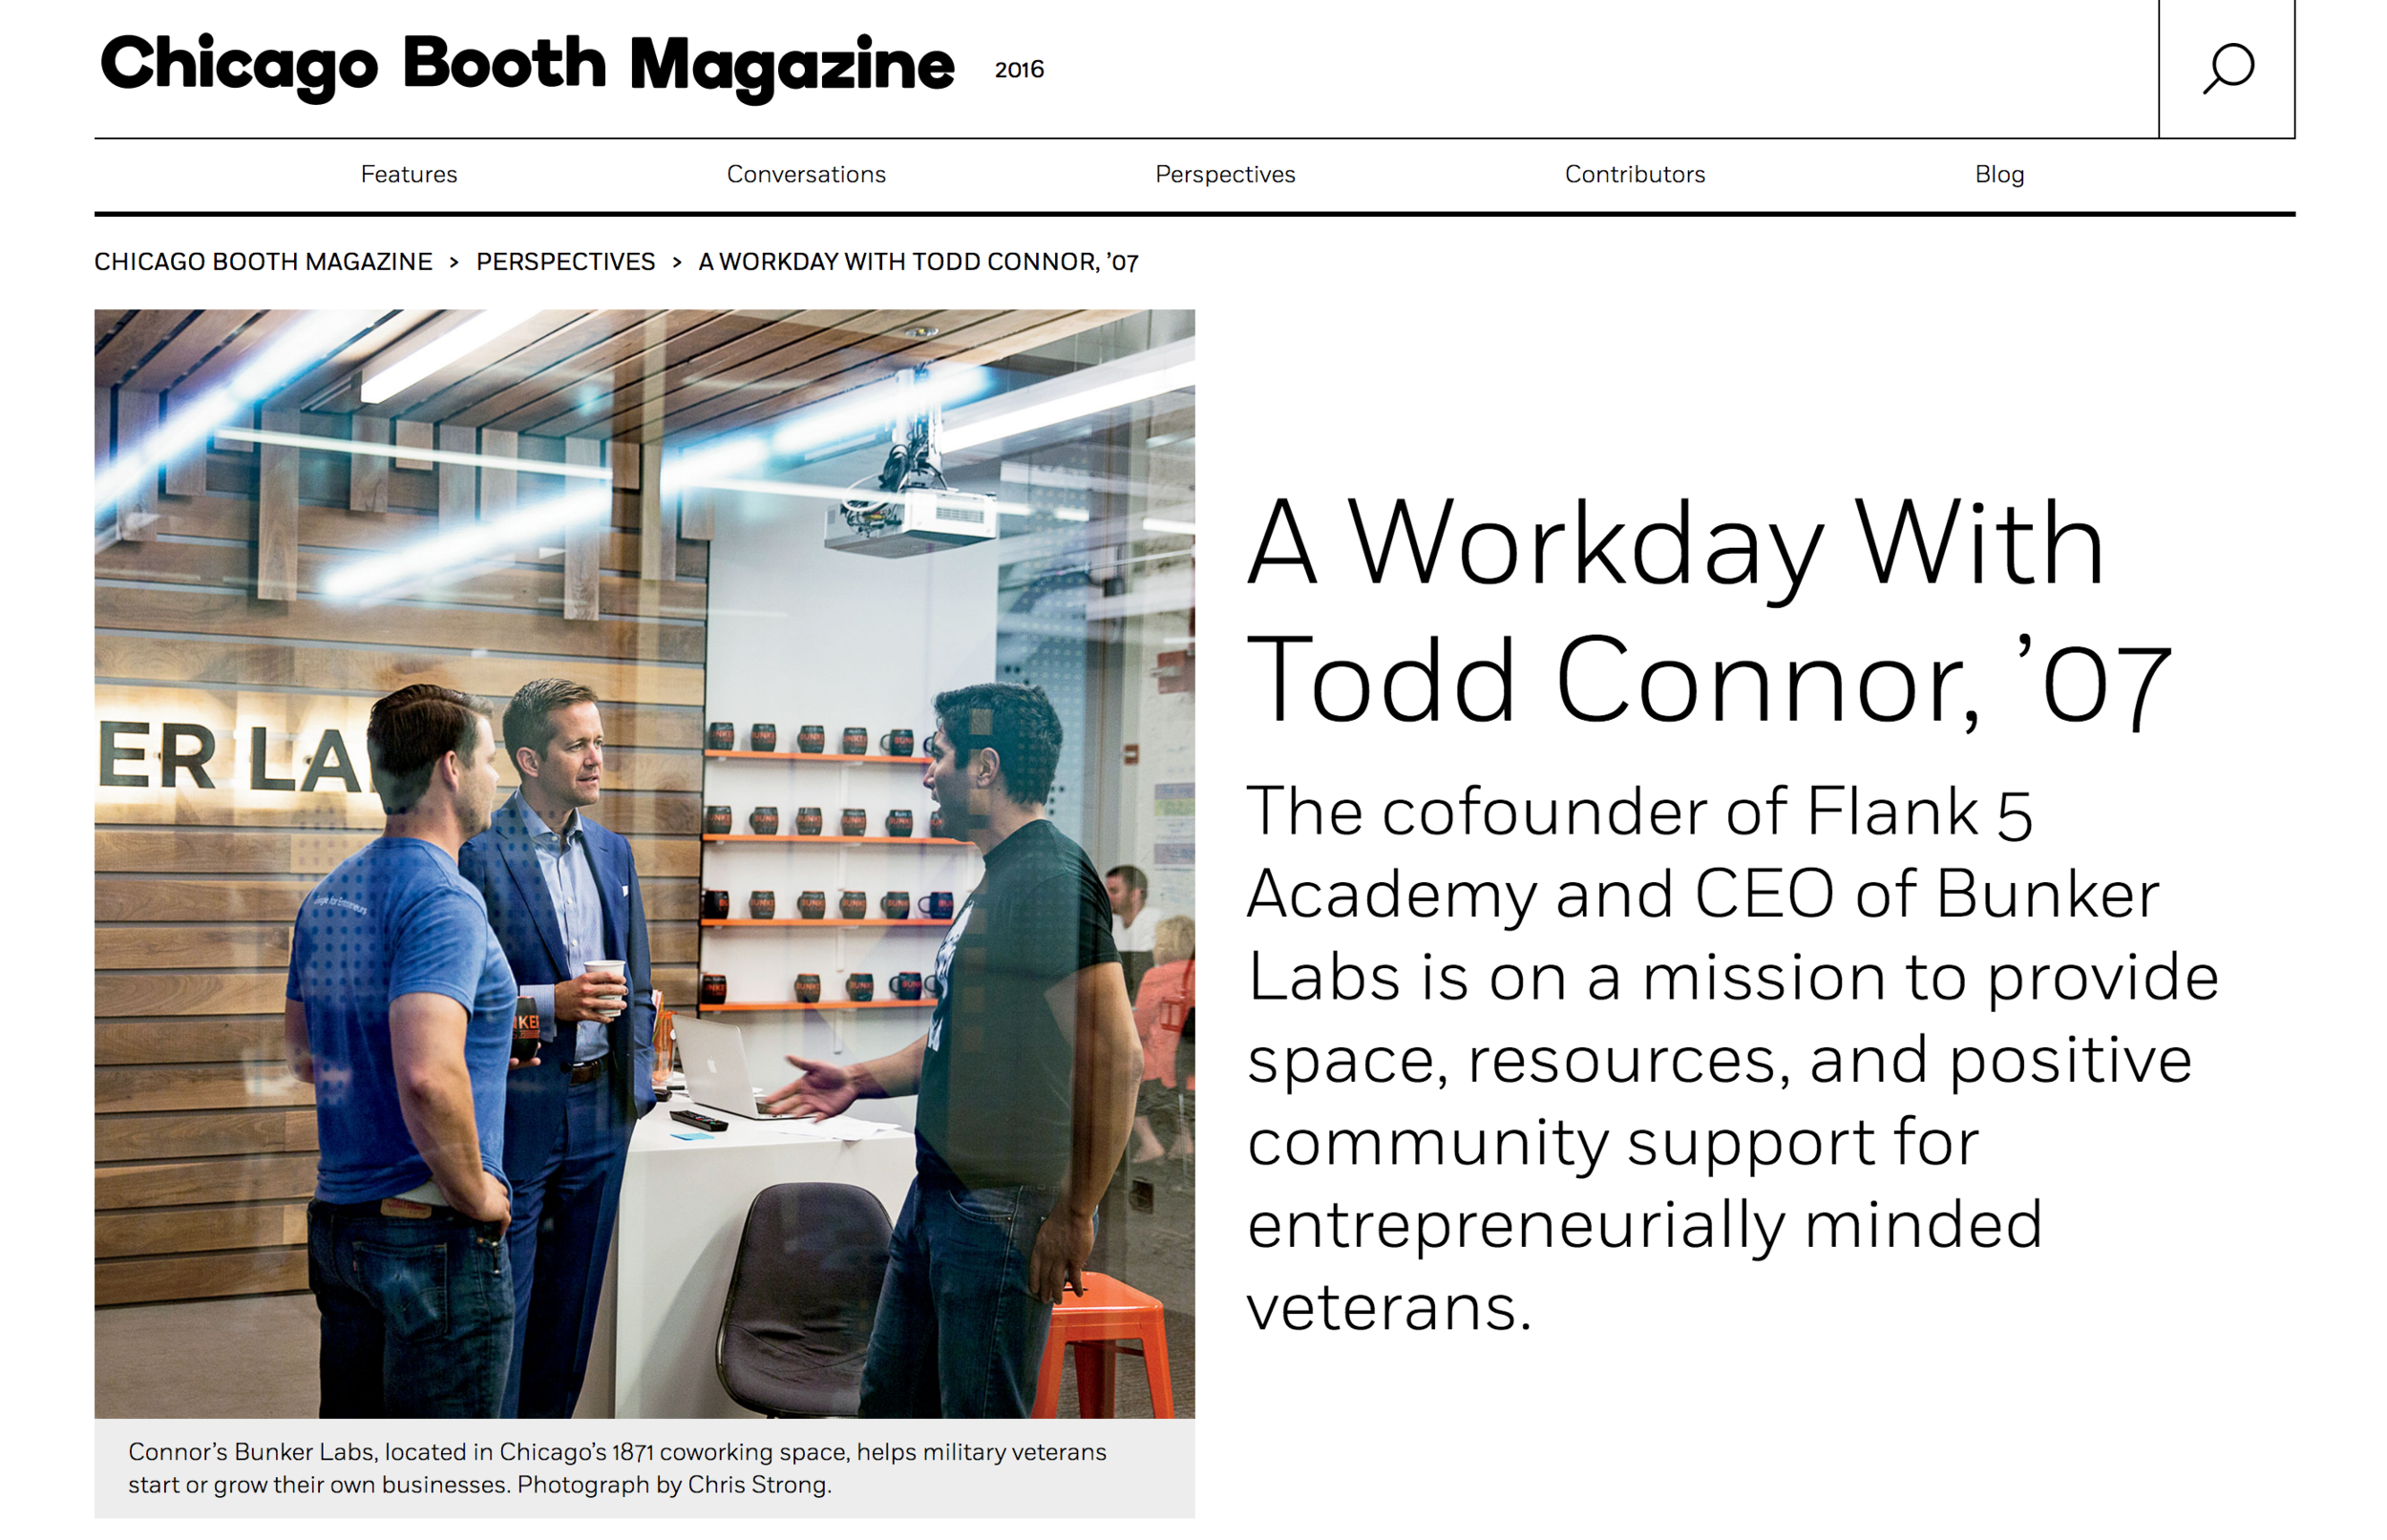 cbm-workday-with-todd-connor